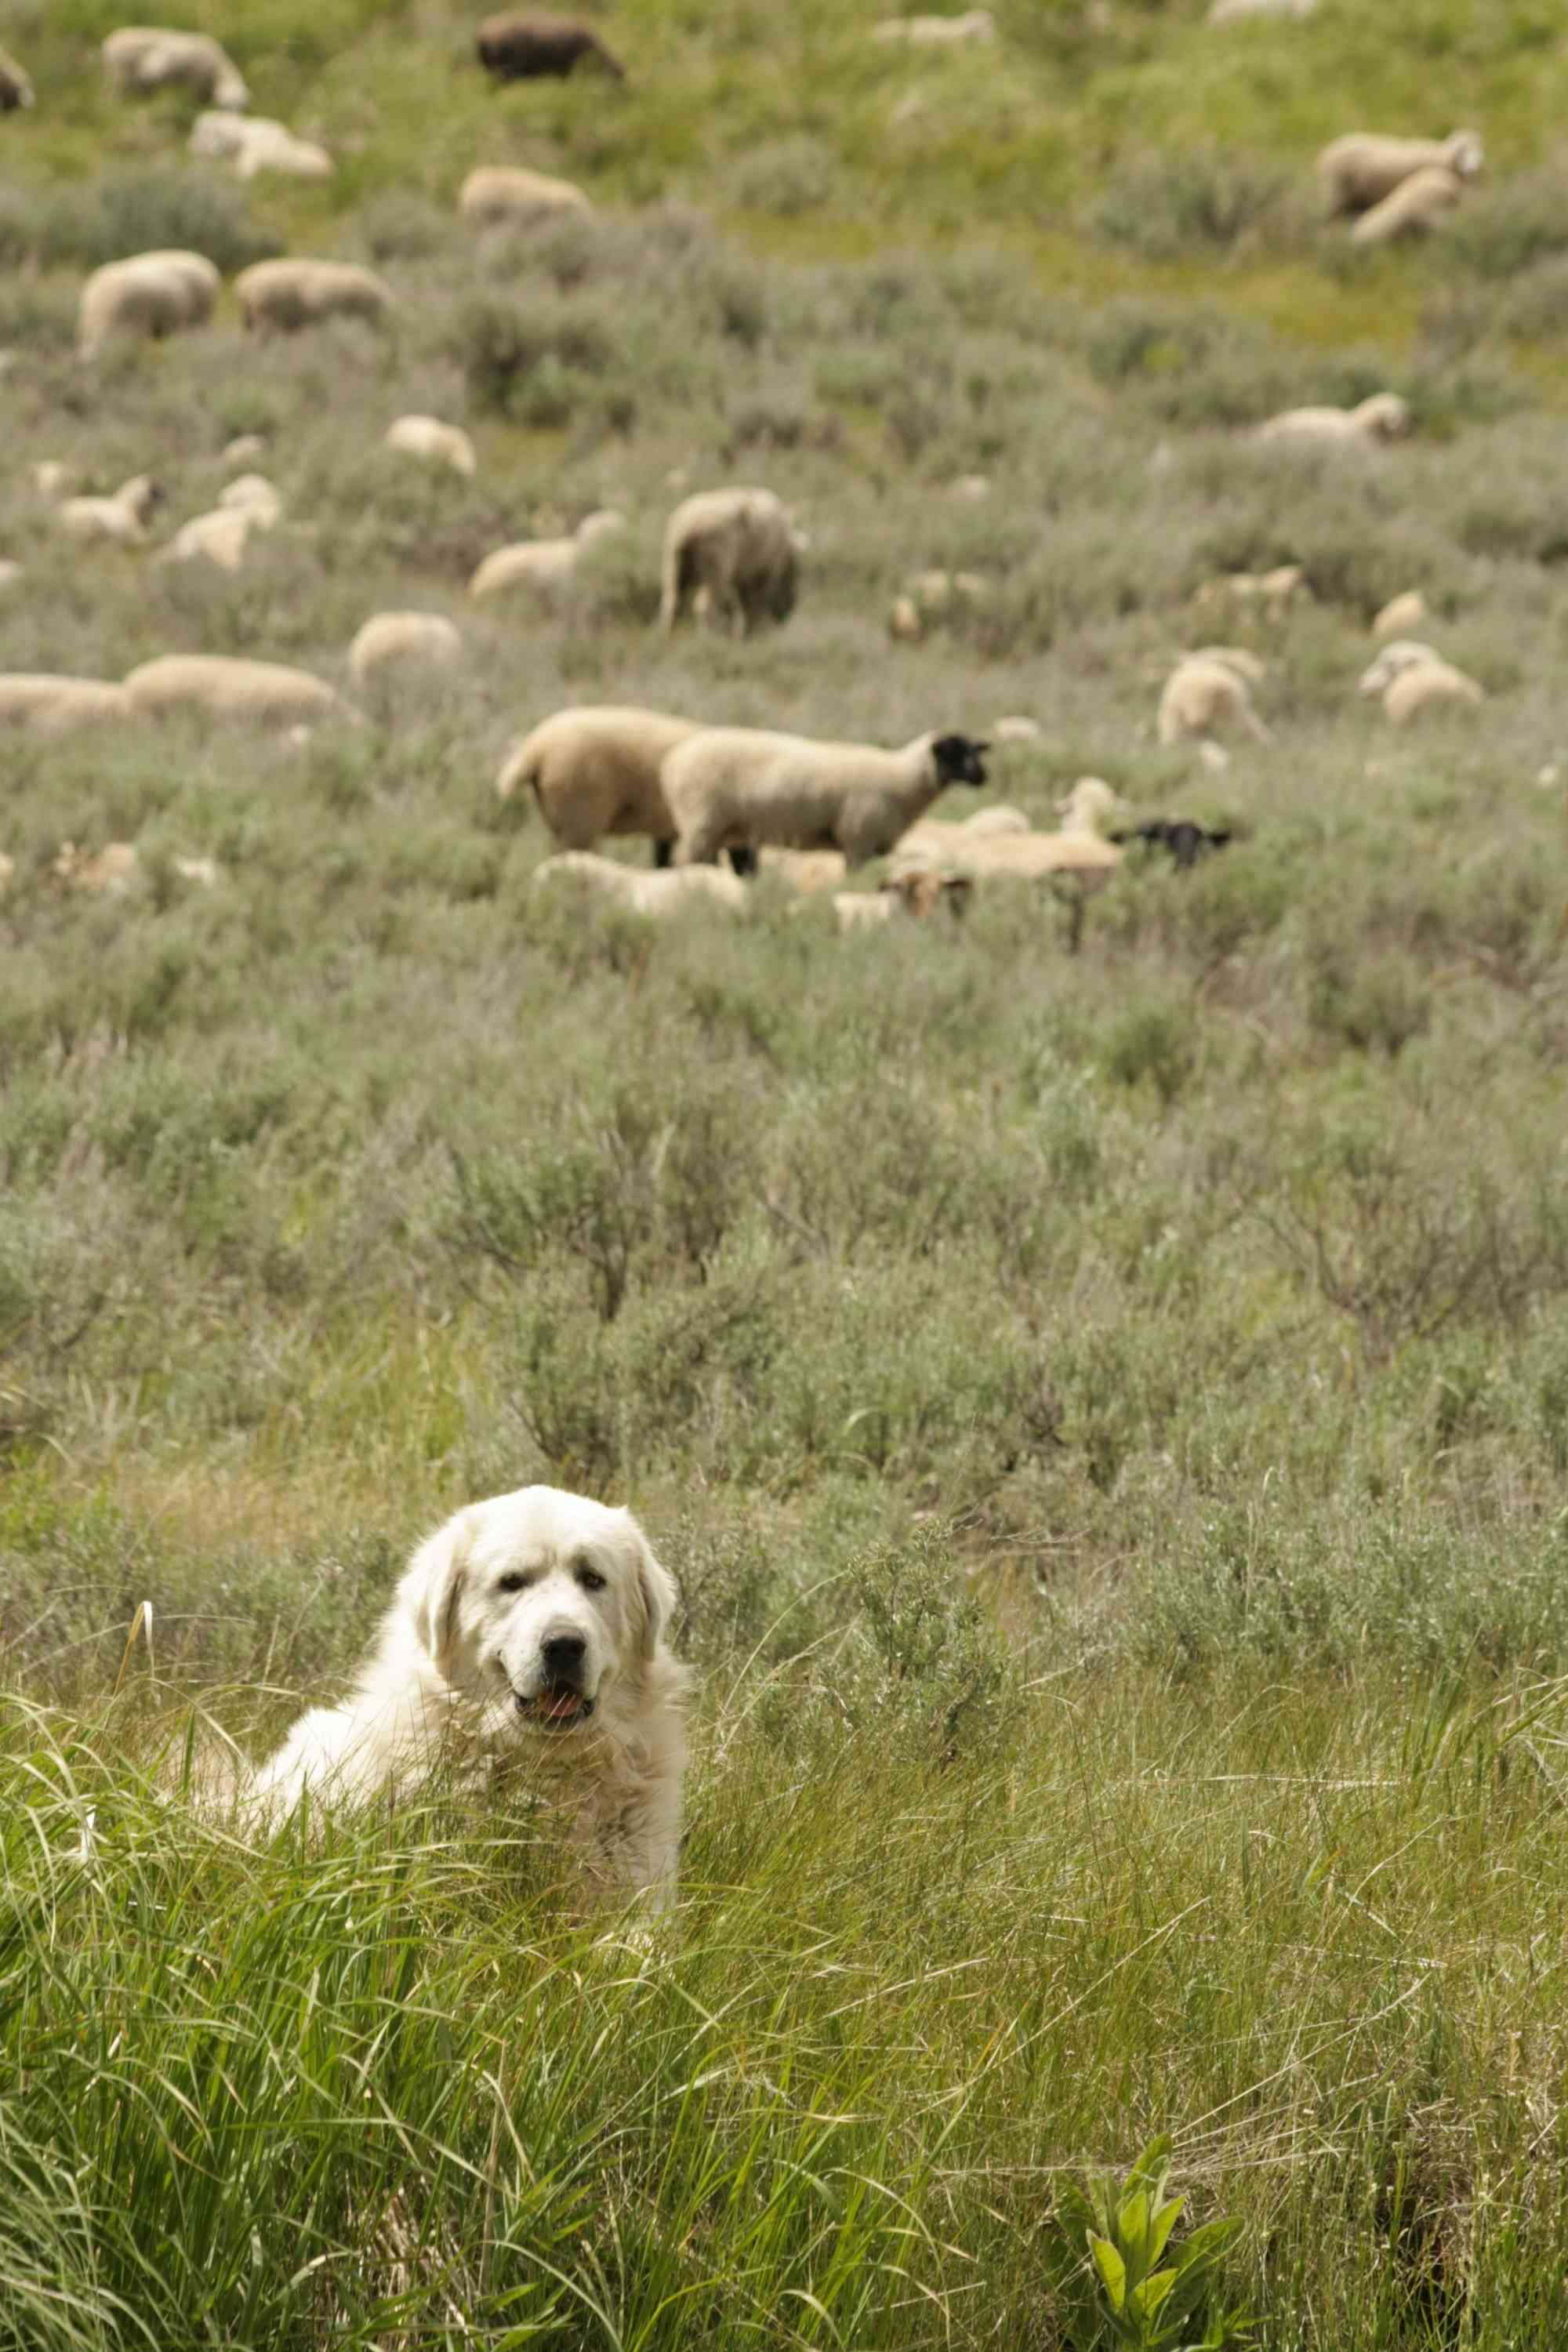 Wood River Guardian Dog with sheep in the background